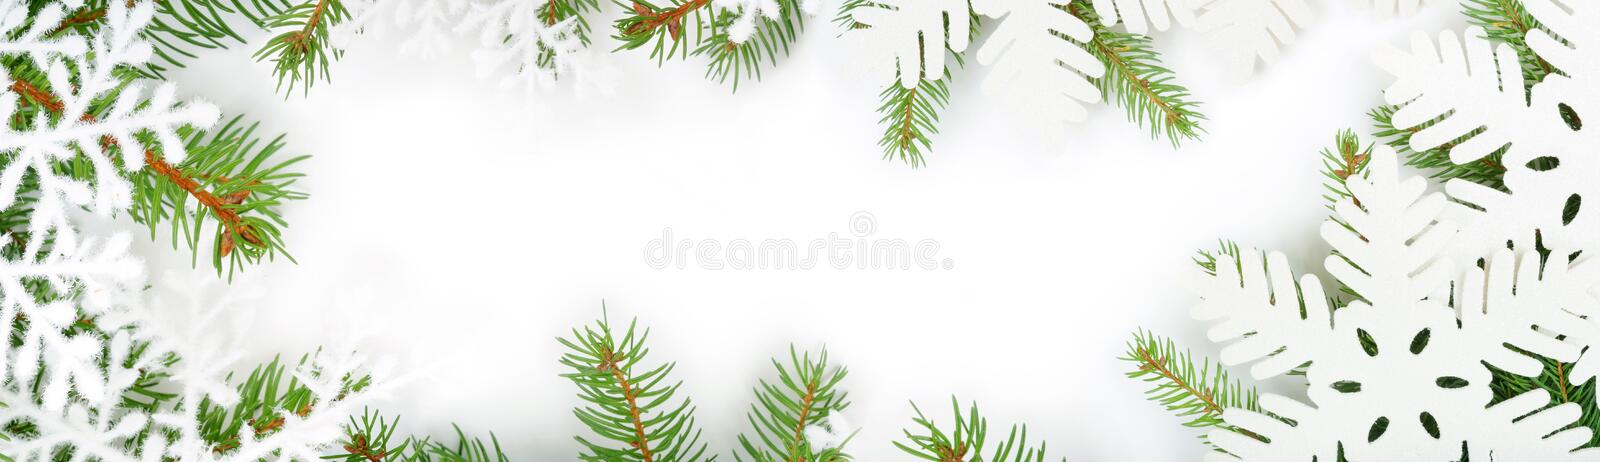 Winter's frame stock photography